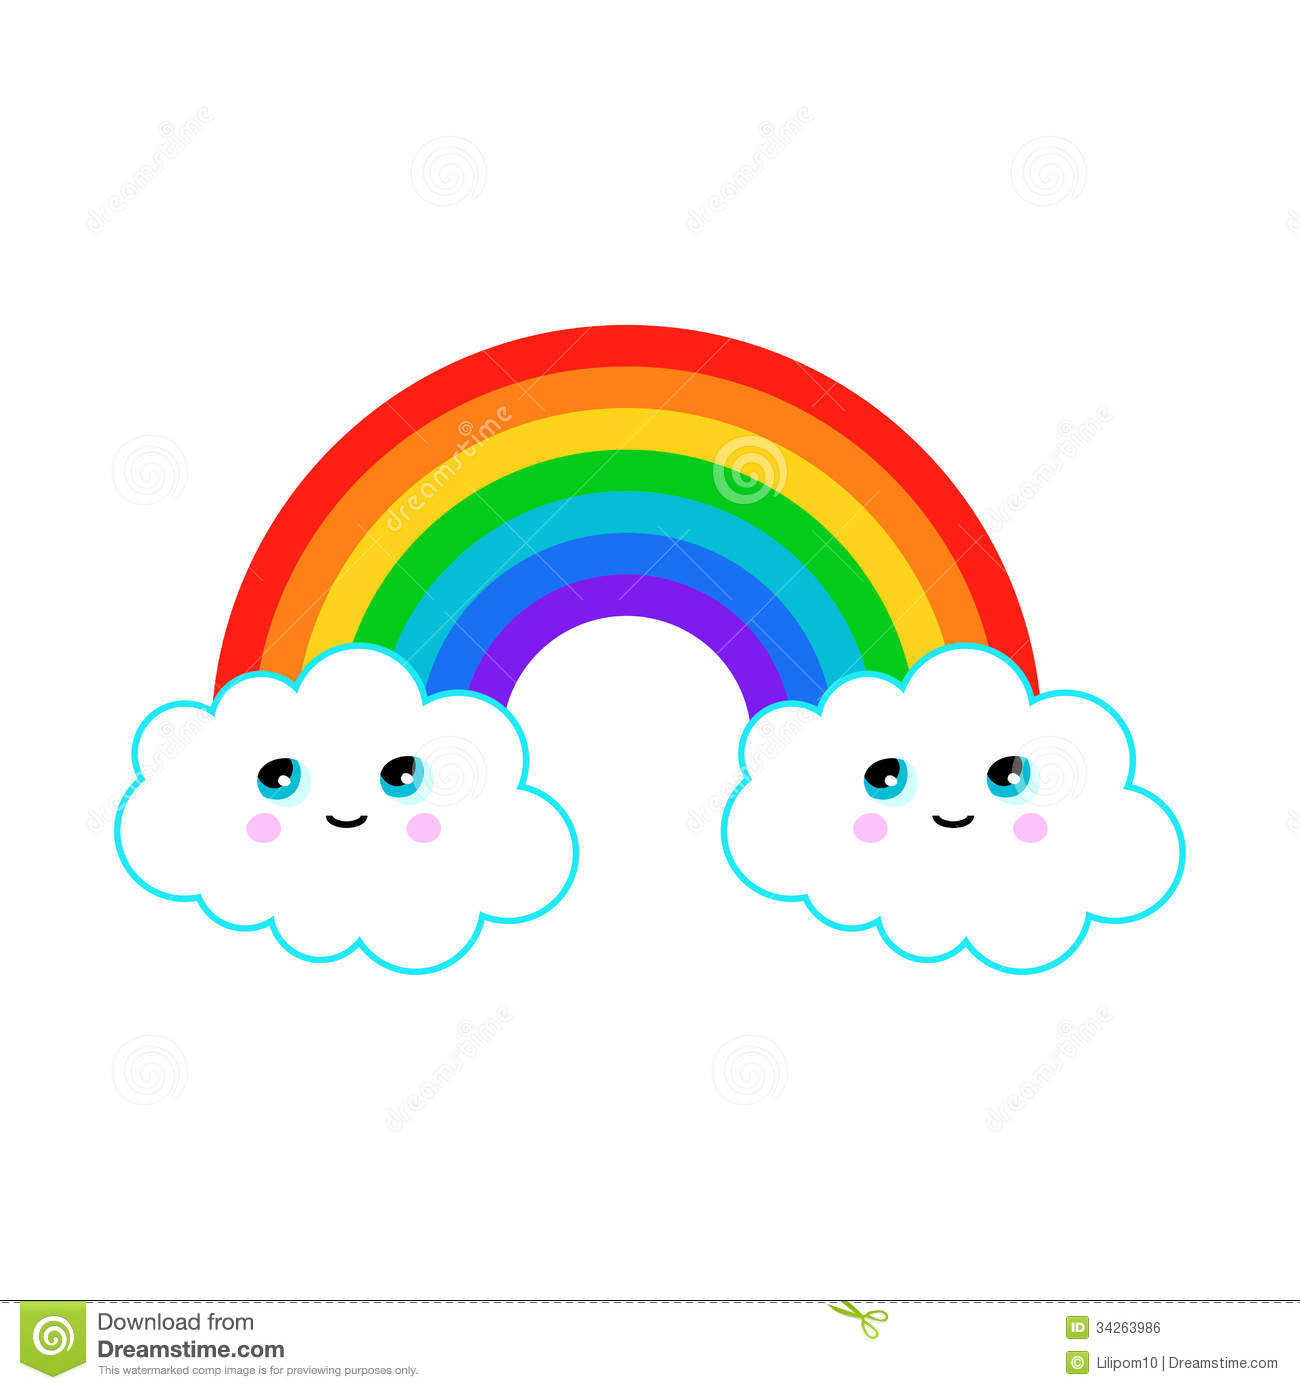 illustration of a rainbow with fun clouds royalty free stock image